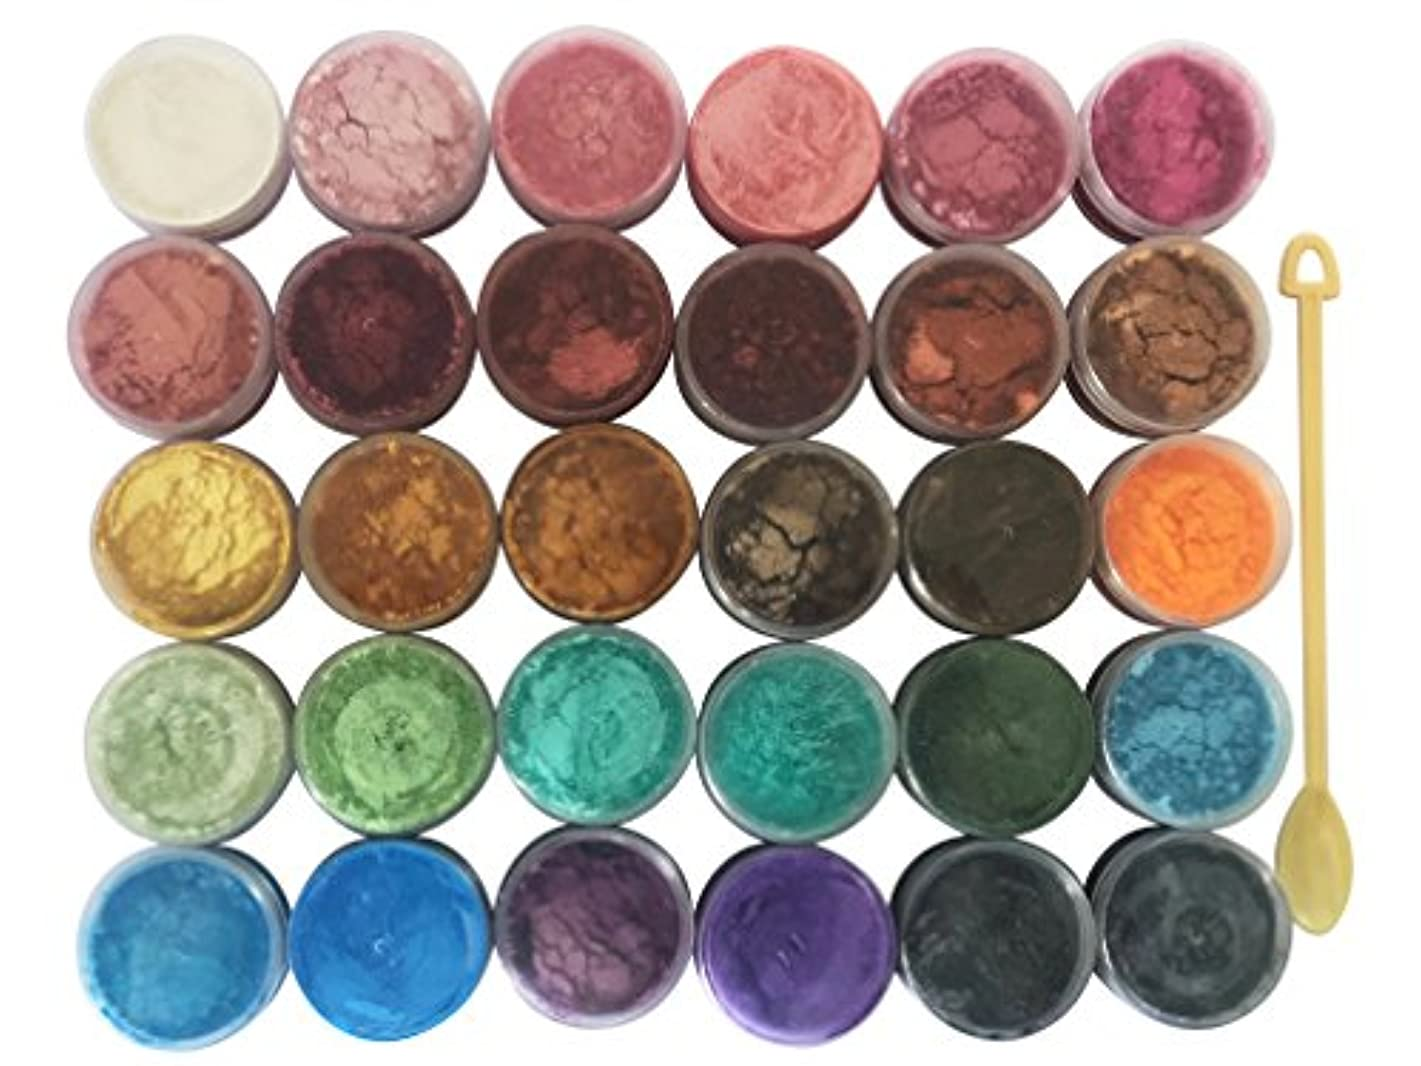 30 Color Pigments Shimmer Mica Powder - DIY Soap Making, Candle Making,Resin Dye, Mica Powder Organic for Soap Molds - Bath Bomb Dye Colorant